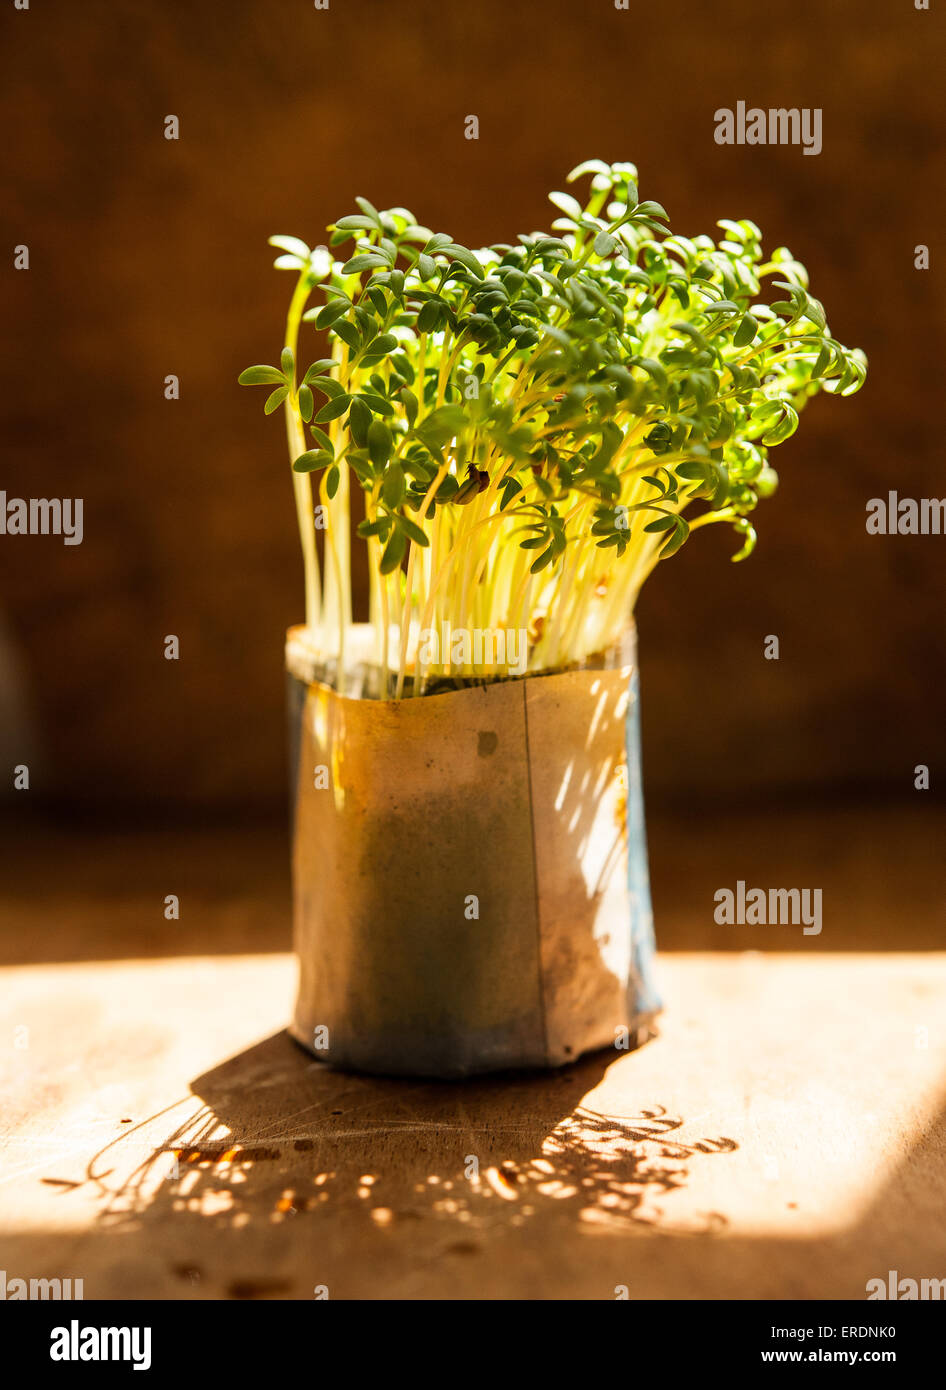 Cress growing in a paper pot - Stock Image